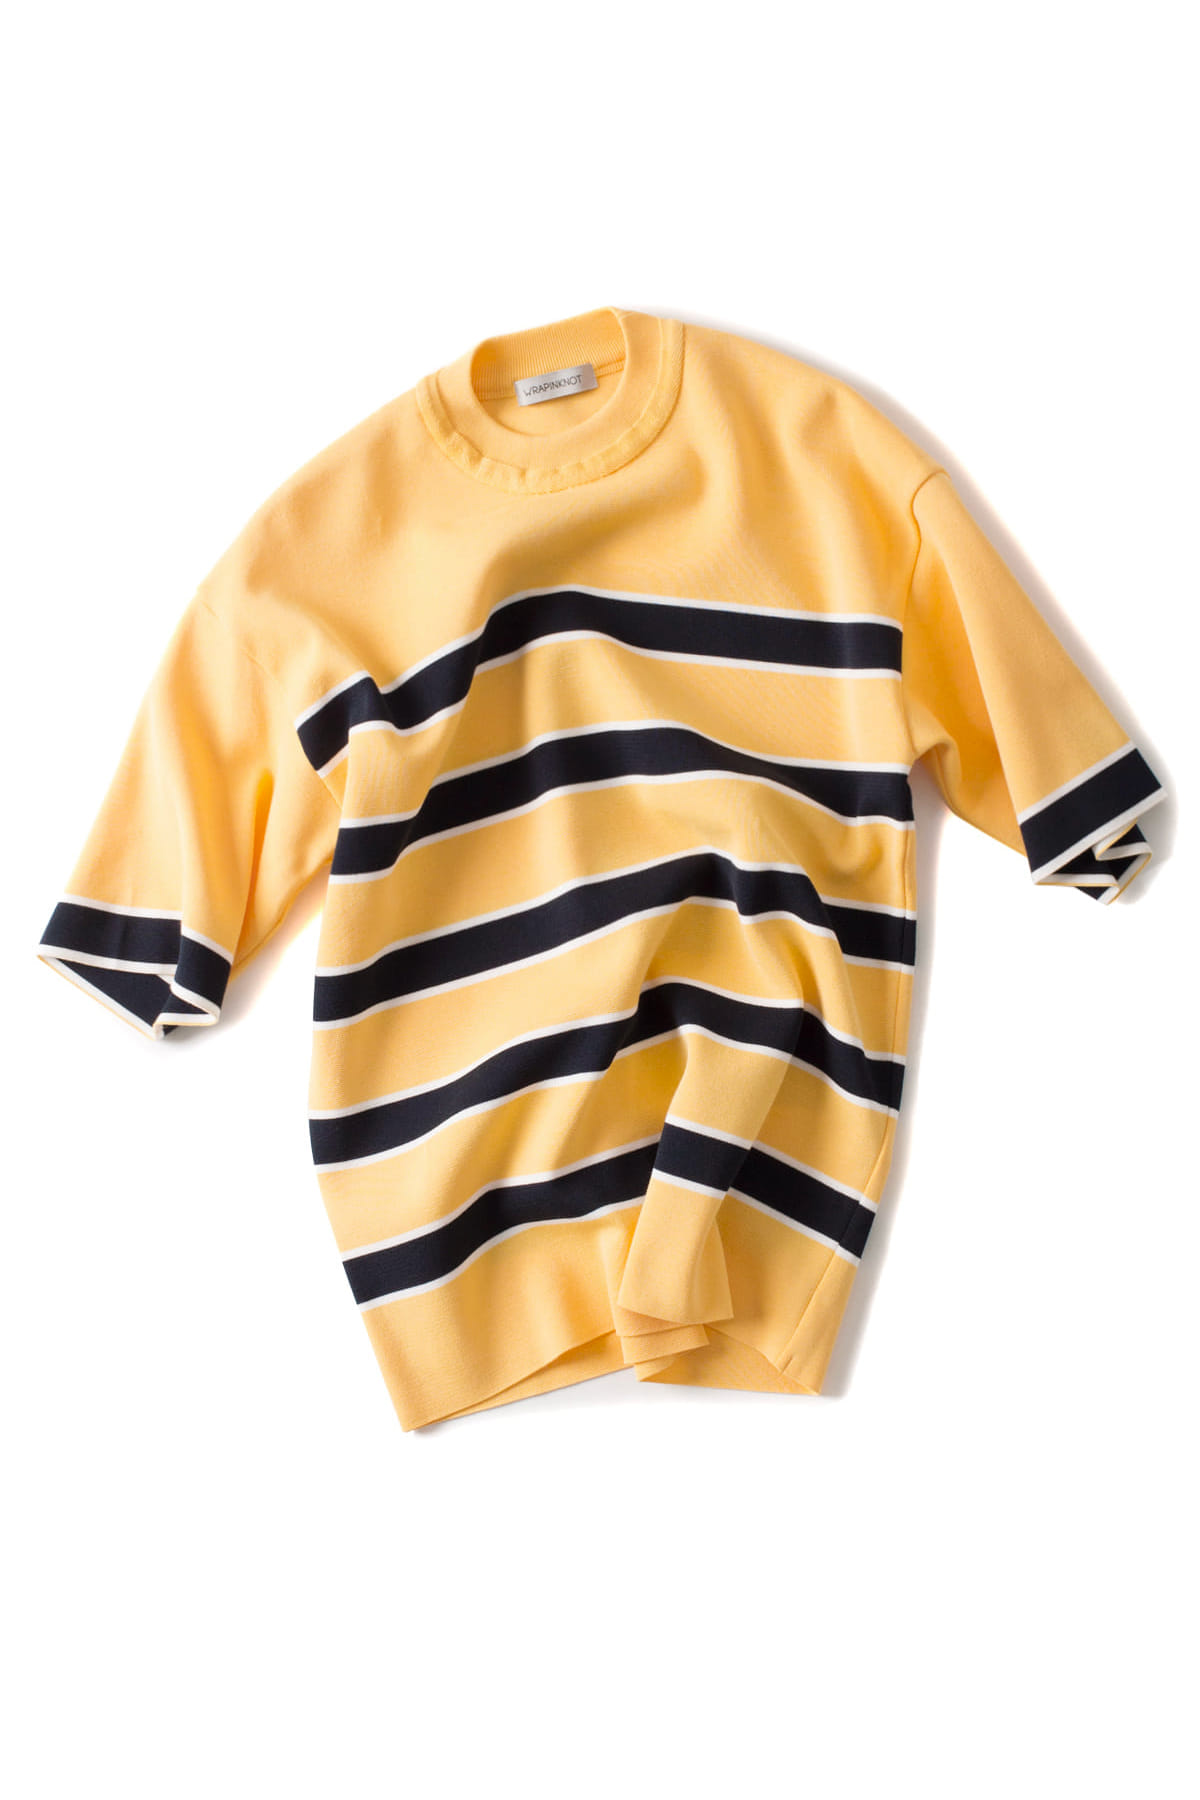 WRAPINKNOT : Border H/S Knit (Yellow)